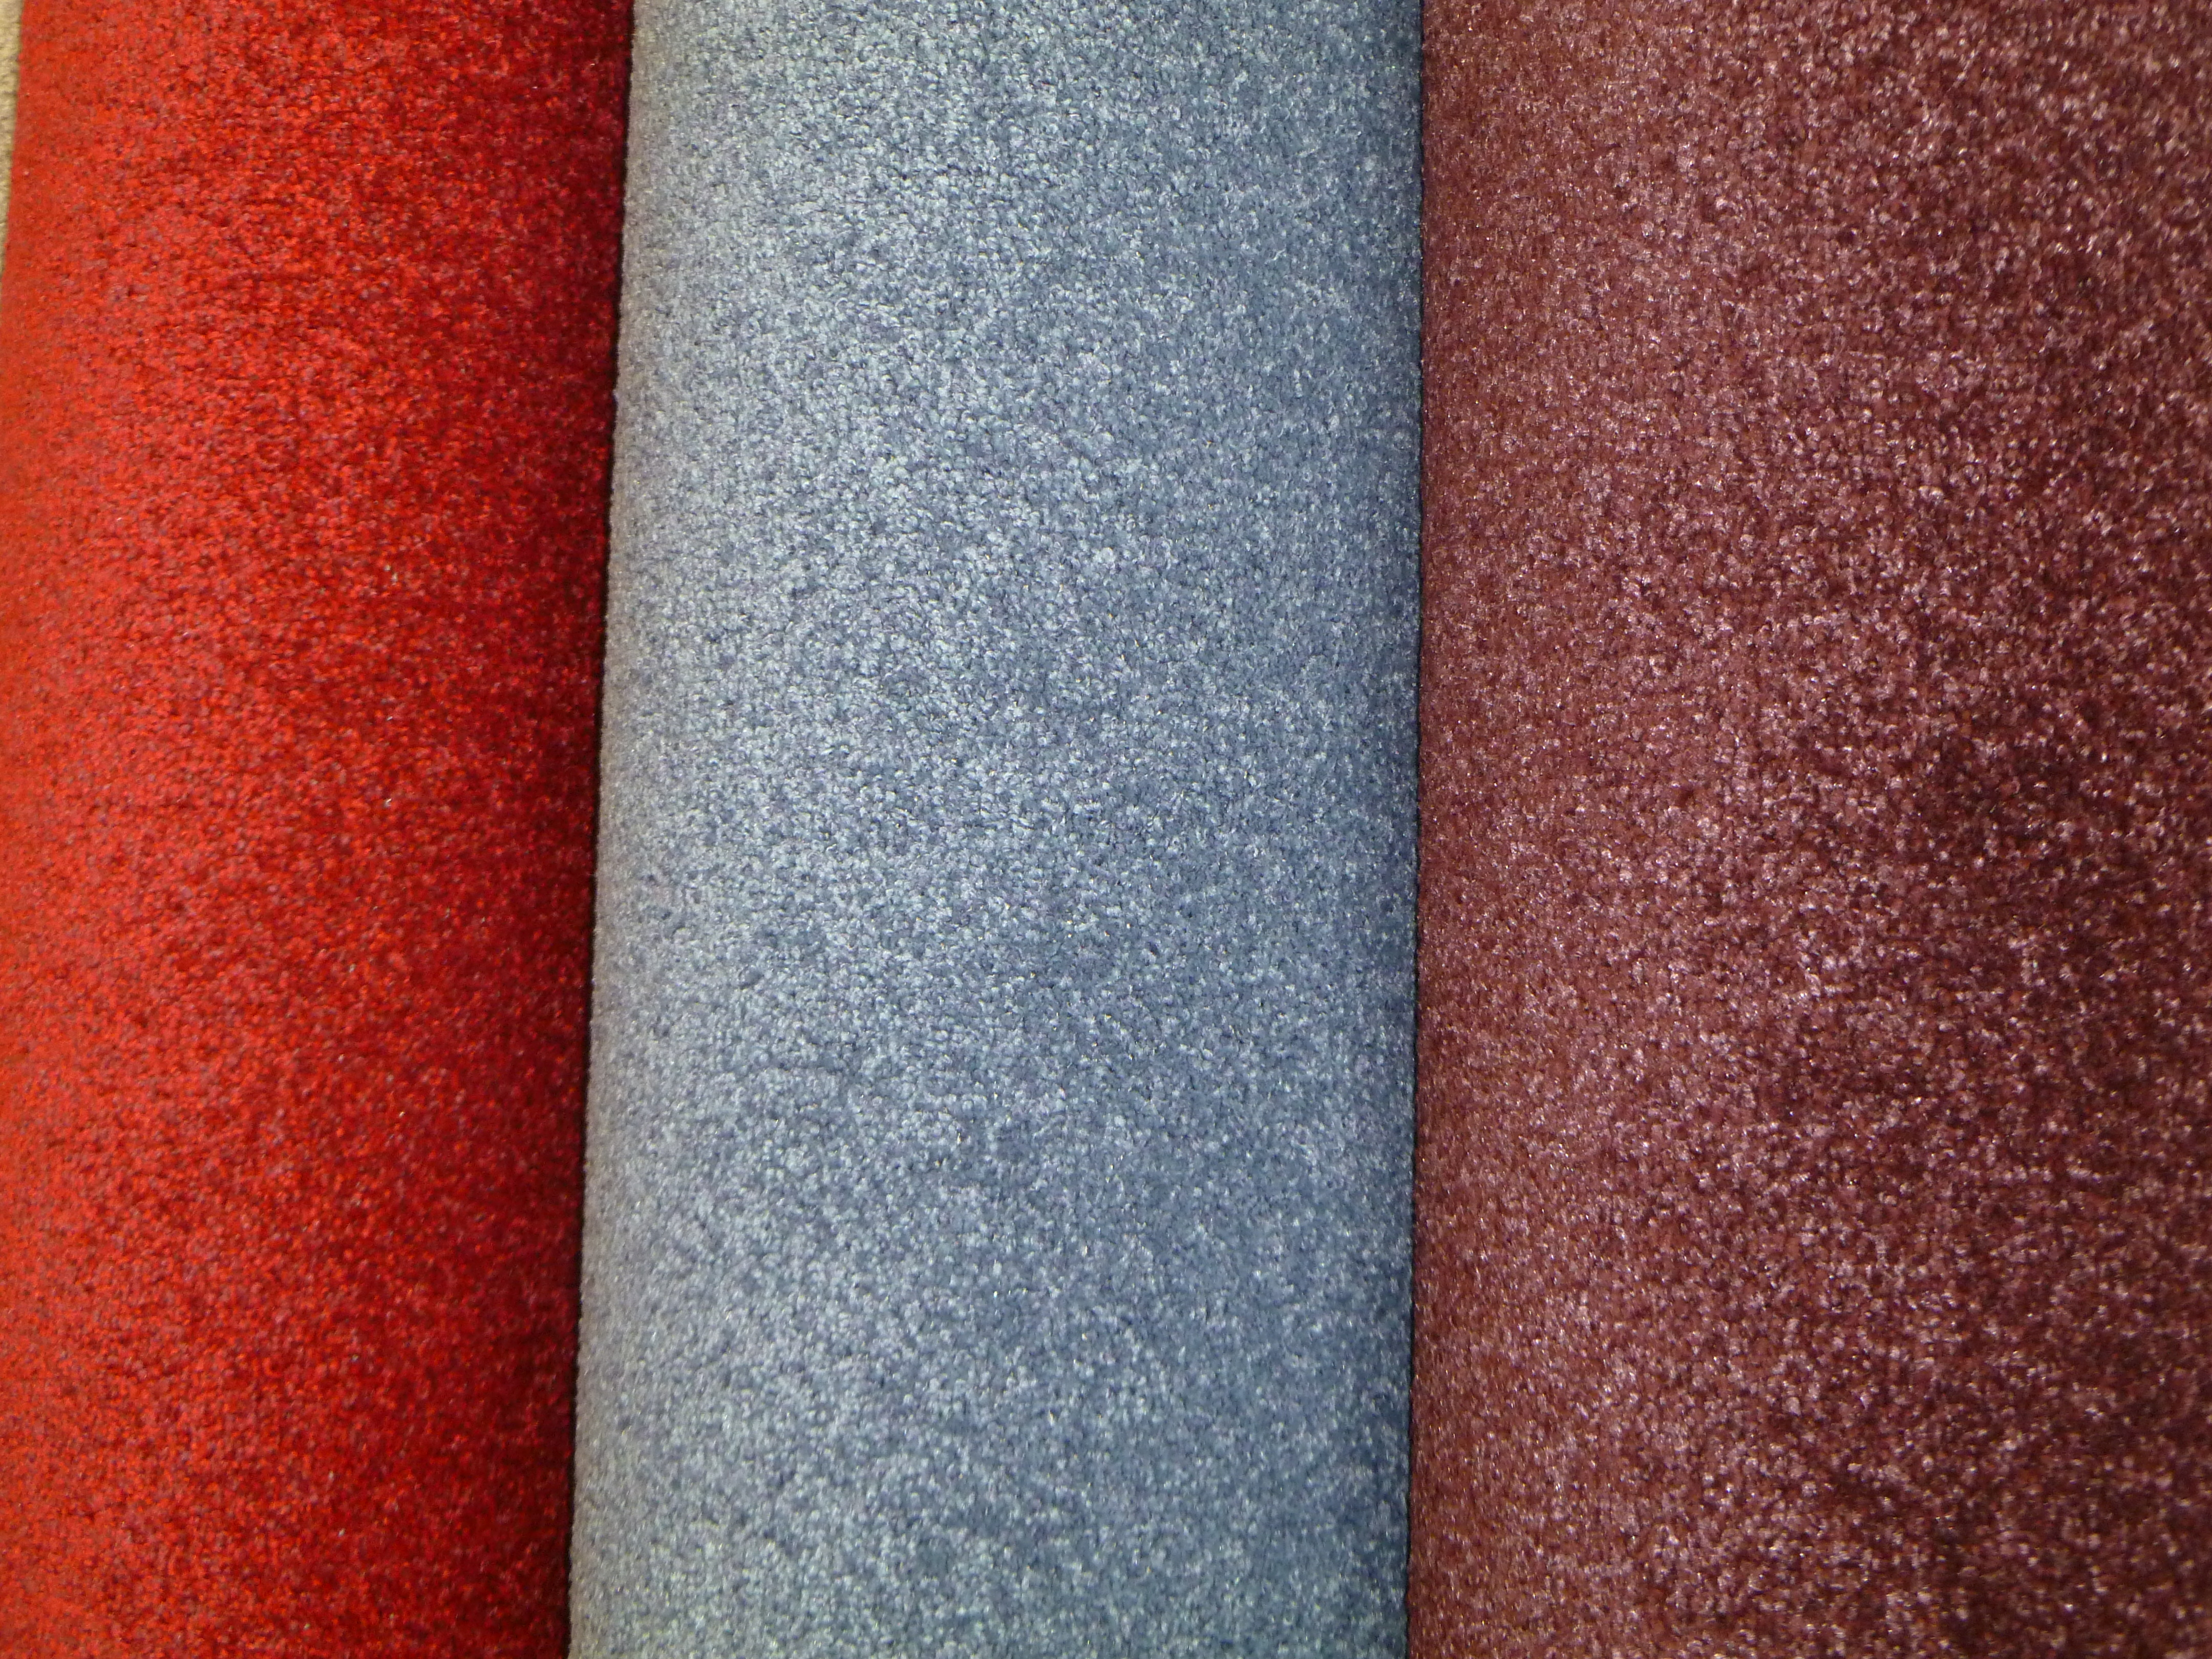 Tuftex Twist 187 Affordable Carpets For A Great Deal It